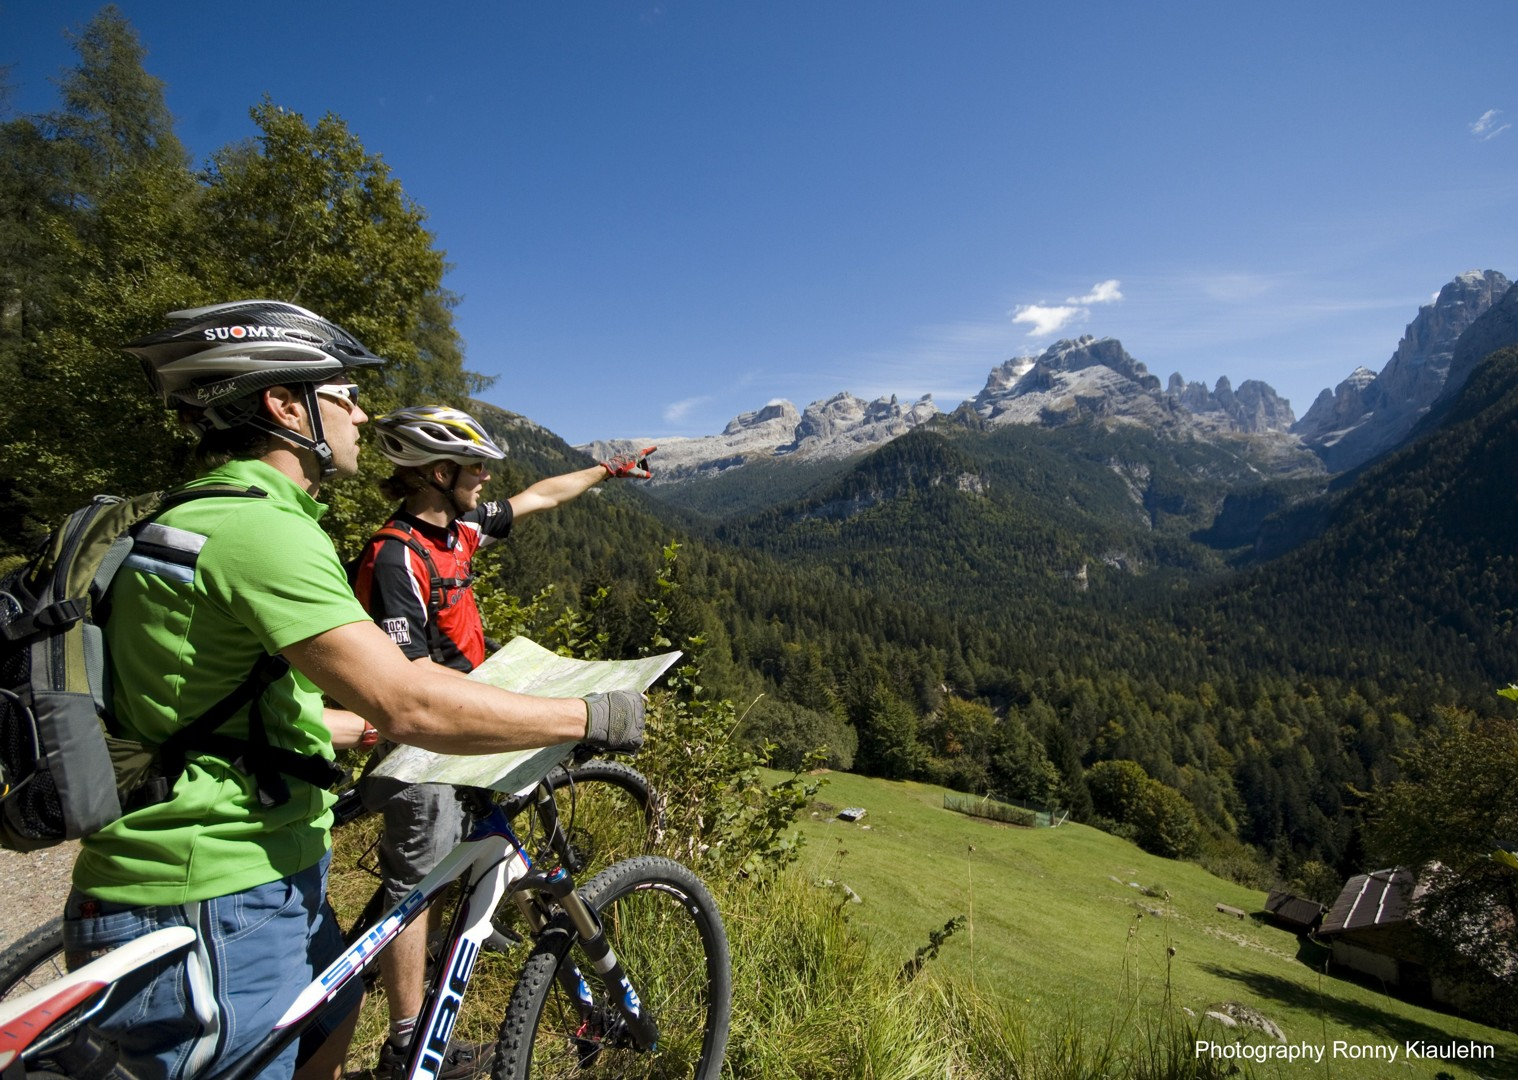 dolomites7.jpg - Italy - Dolomites of Brenta - Guided Mountain Bike Holiday - Italia Mountain Biking